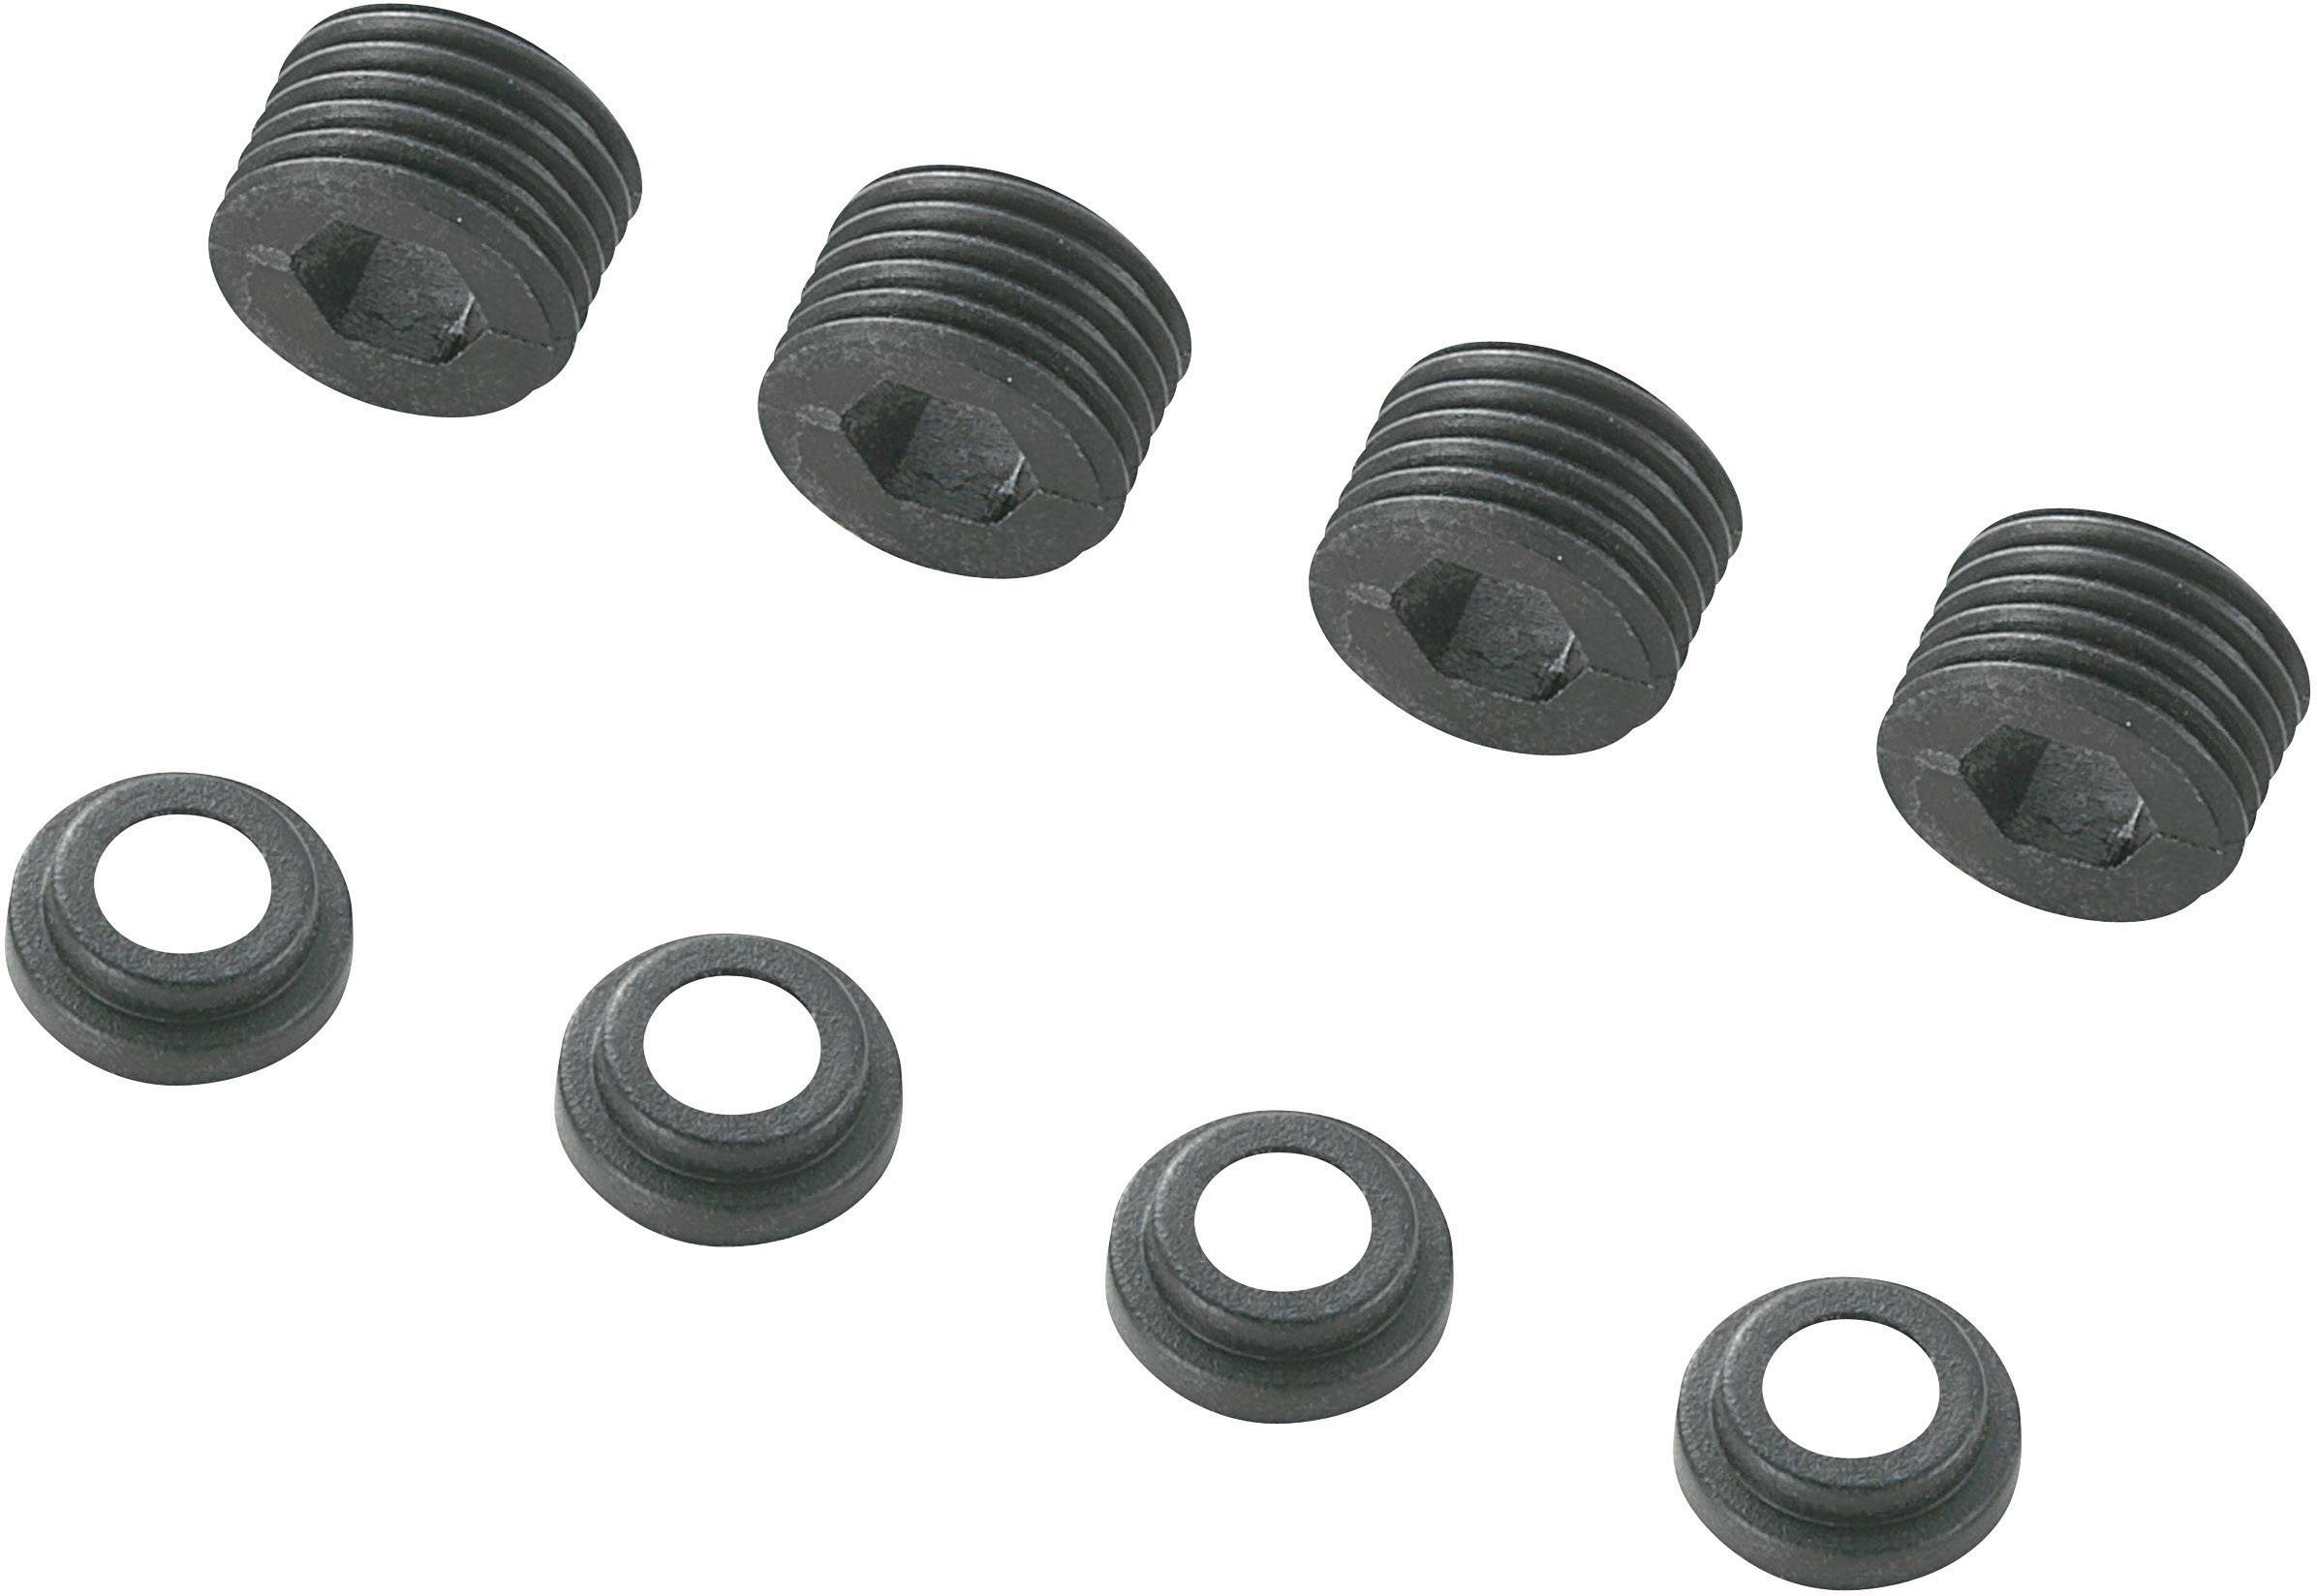 Sada ball head nut, 4 ks (511028)